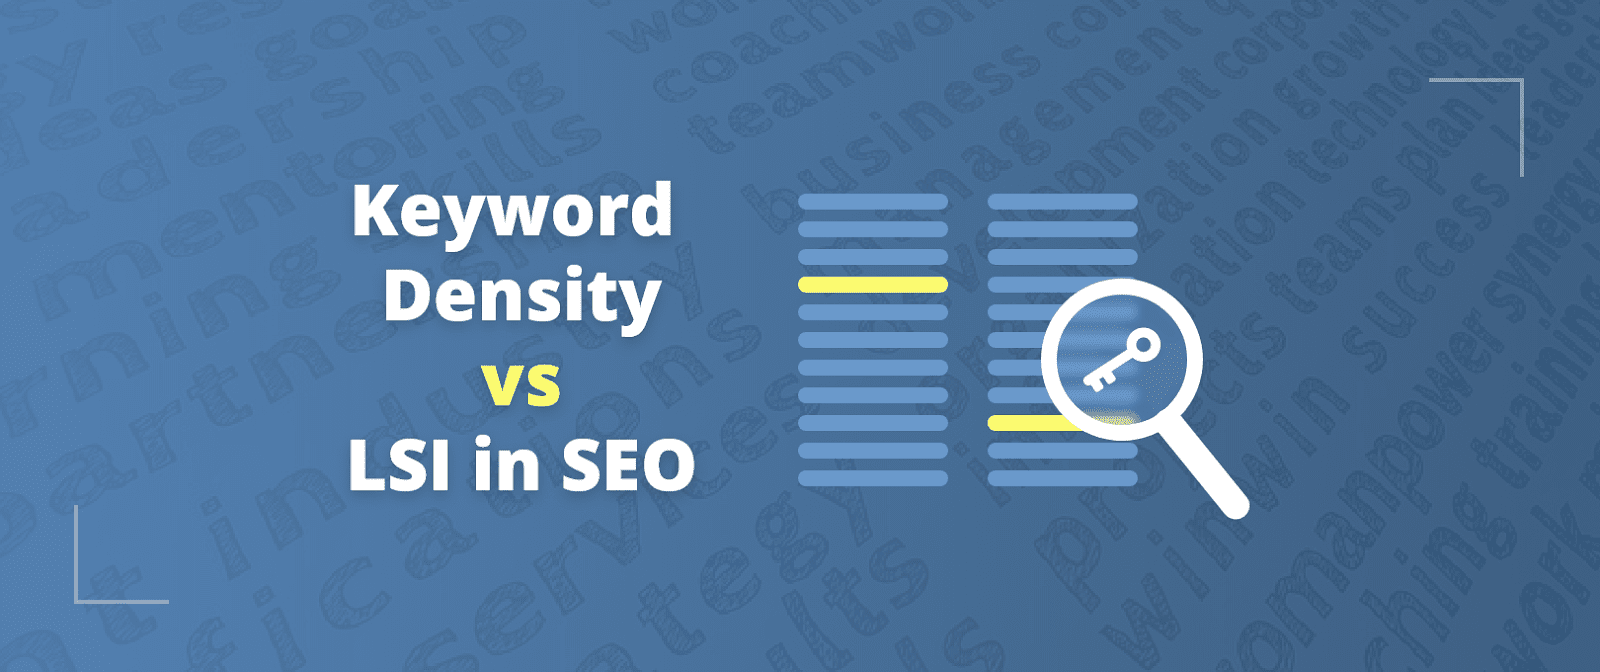 Keyword Density vs LSI